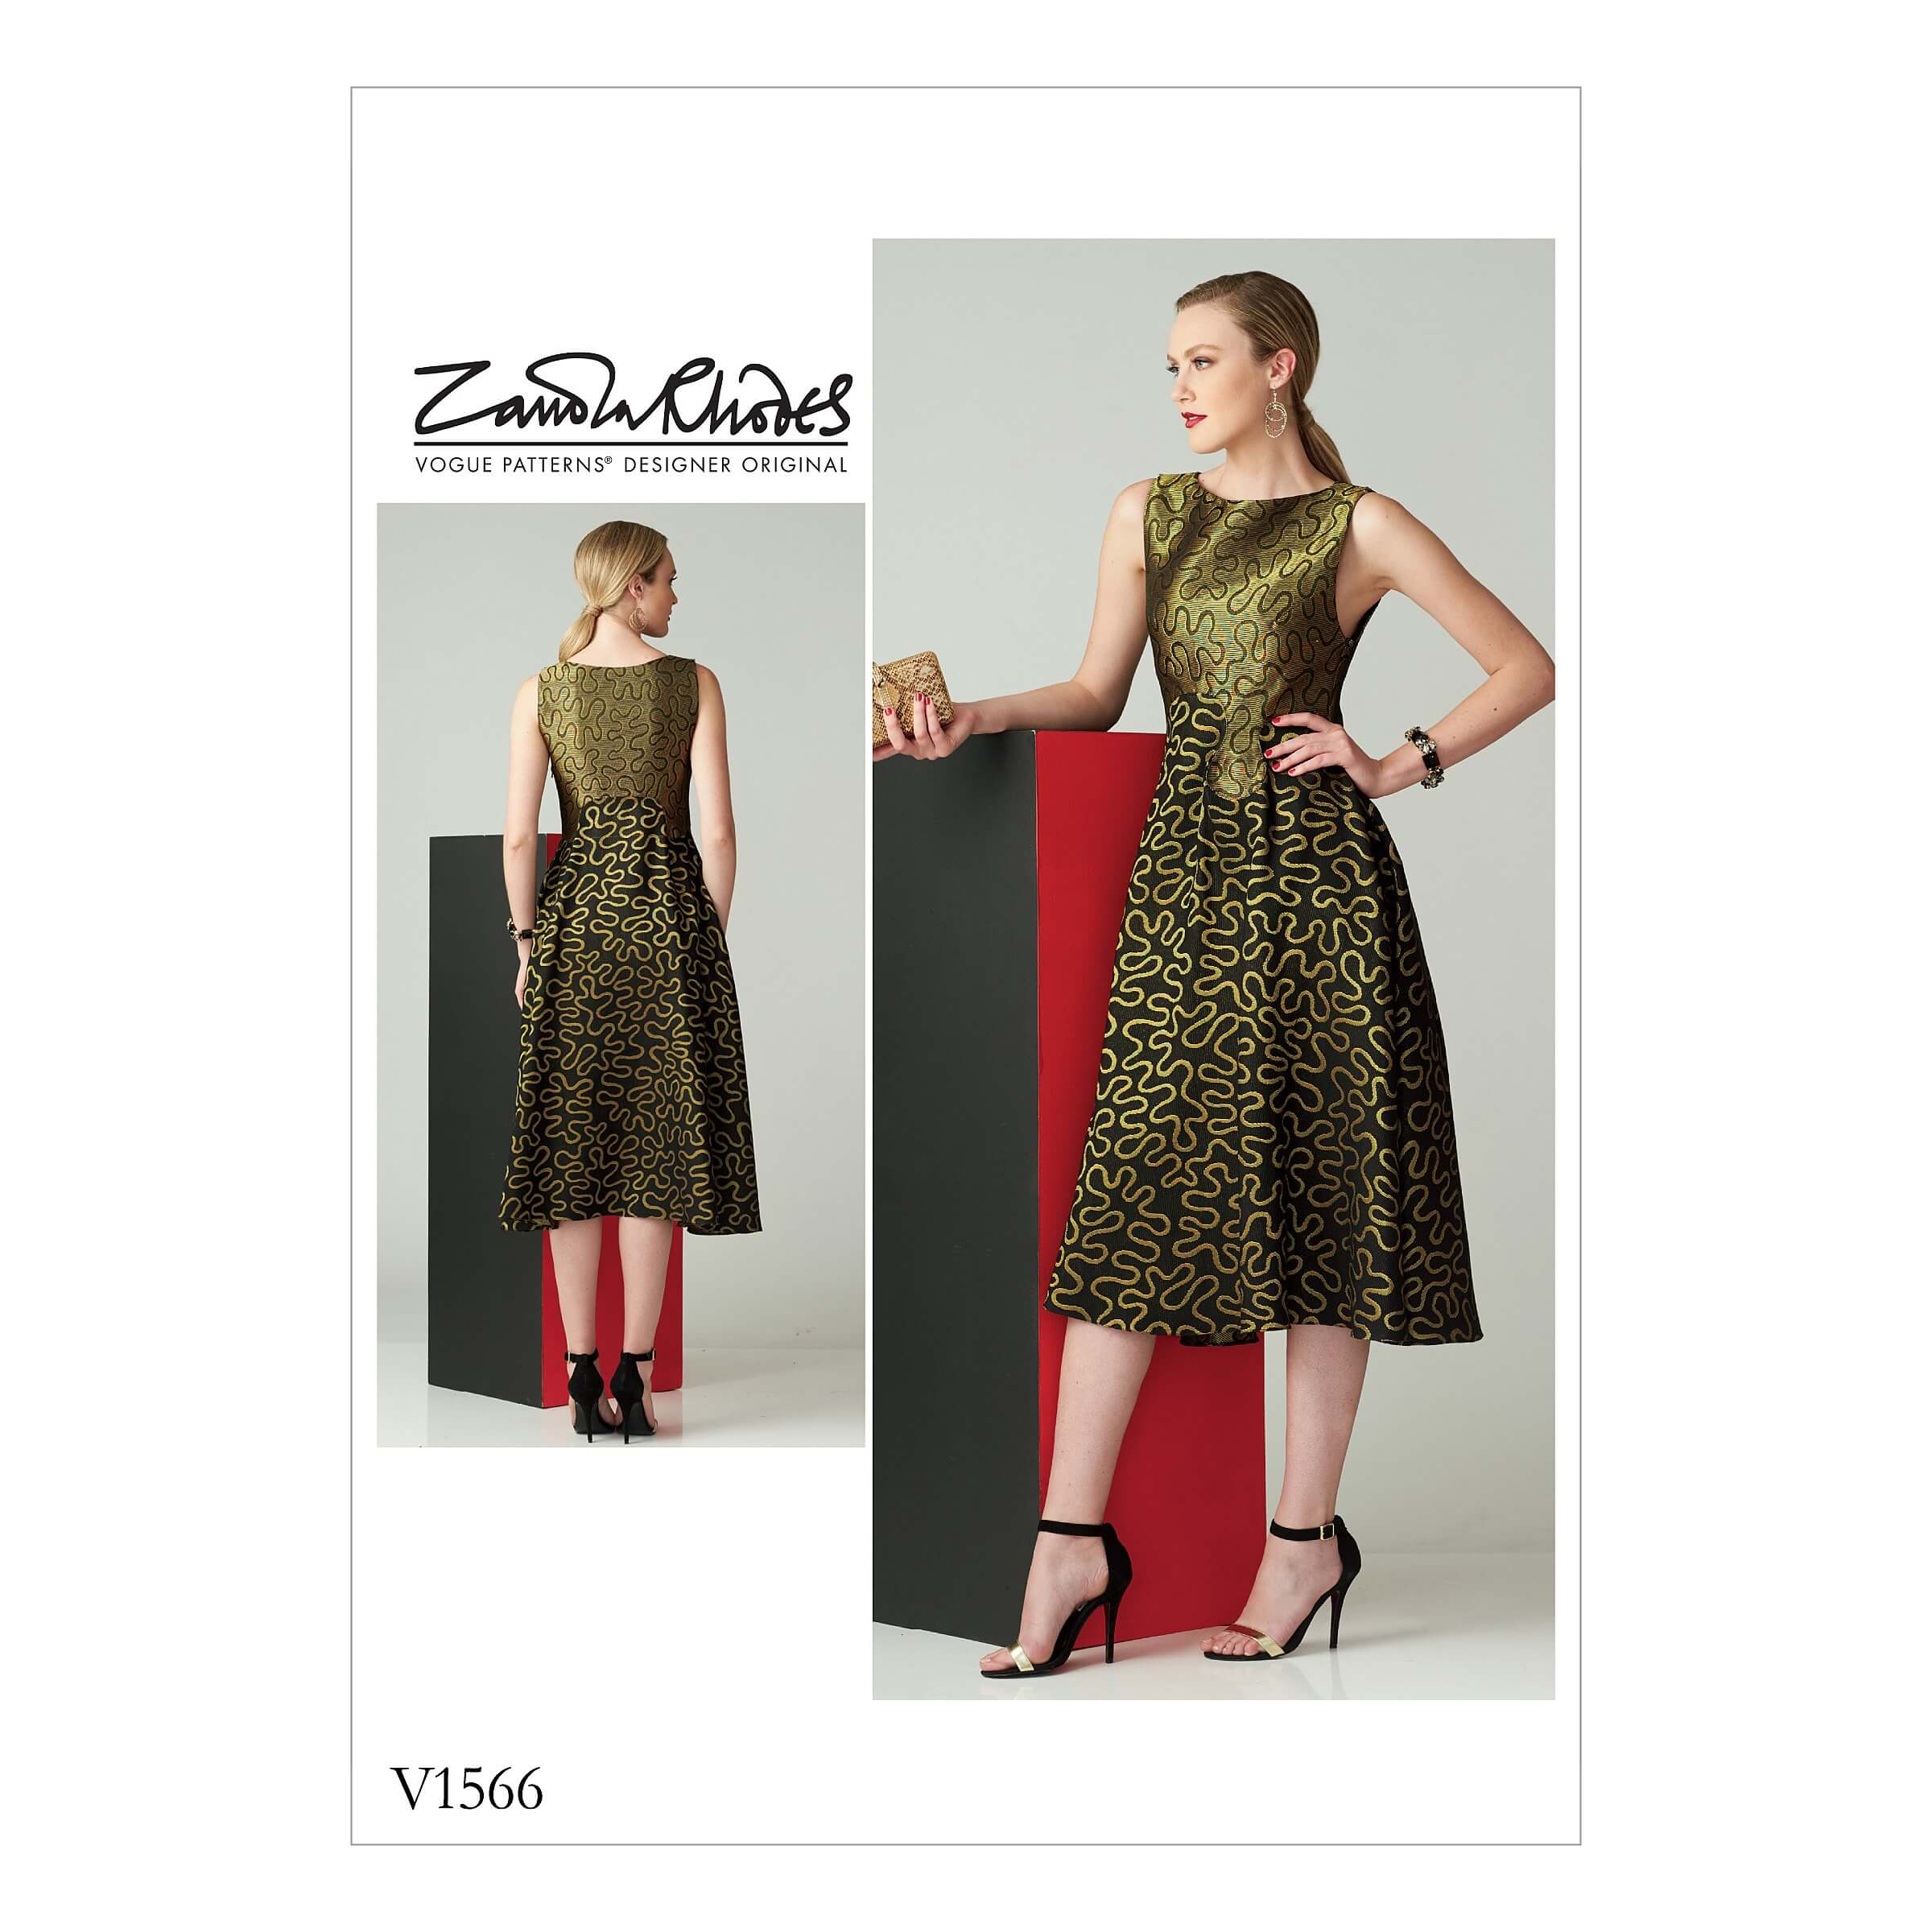 Vogue Sewing Pattern V1566 Women's Sleeveless Dress Fit and Flare